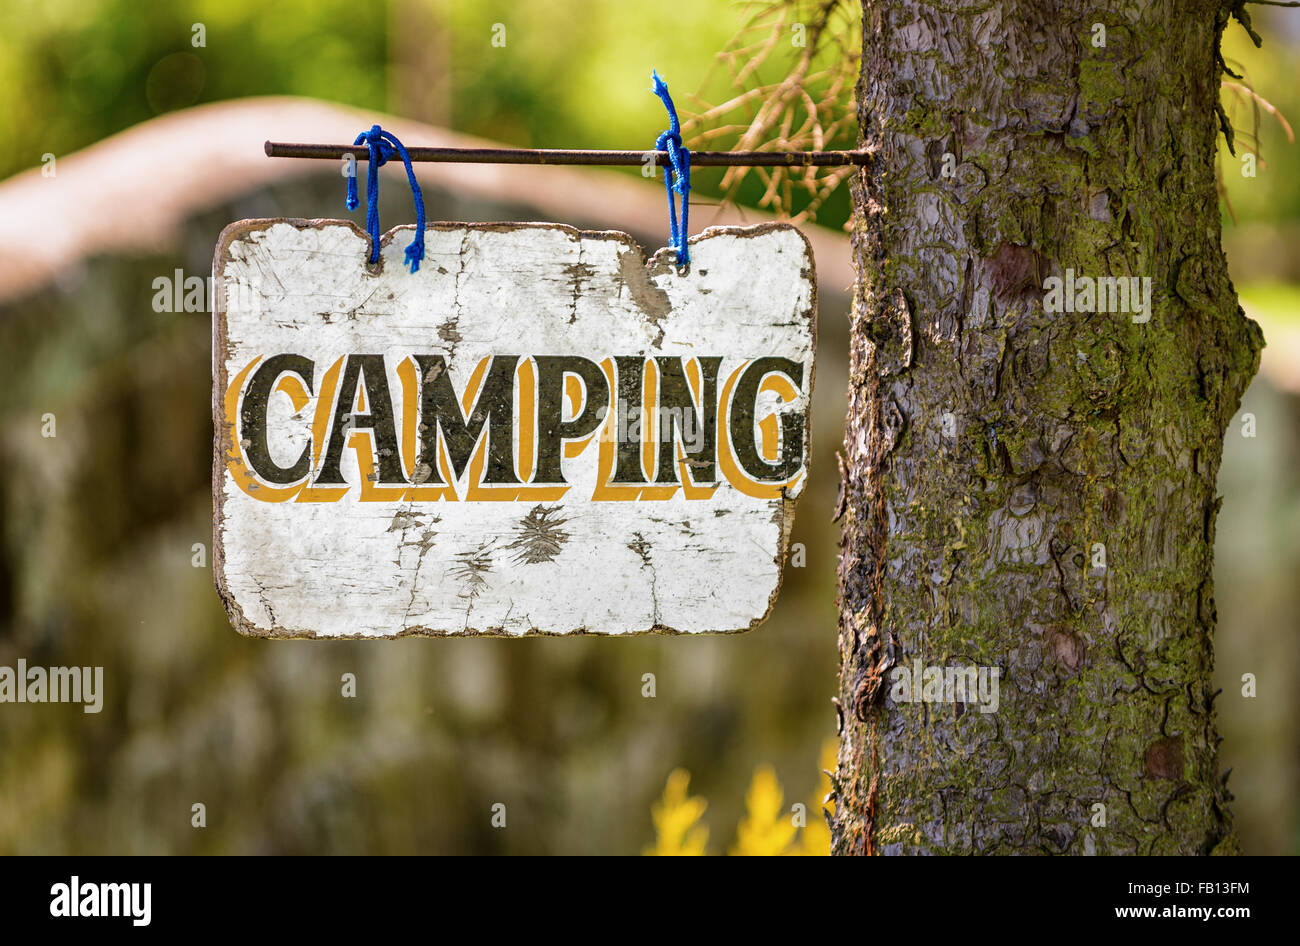 A faded sign advertises a countryside camping ground. Stock Photo